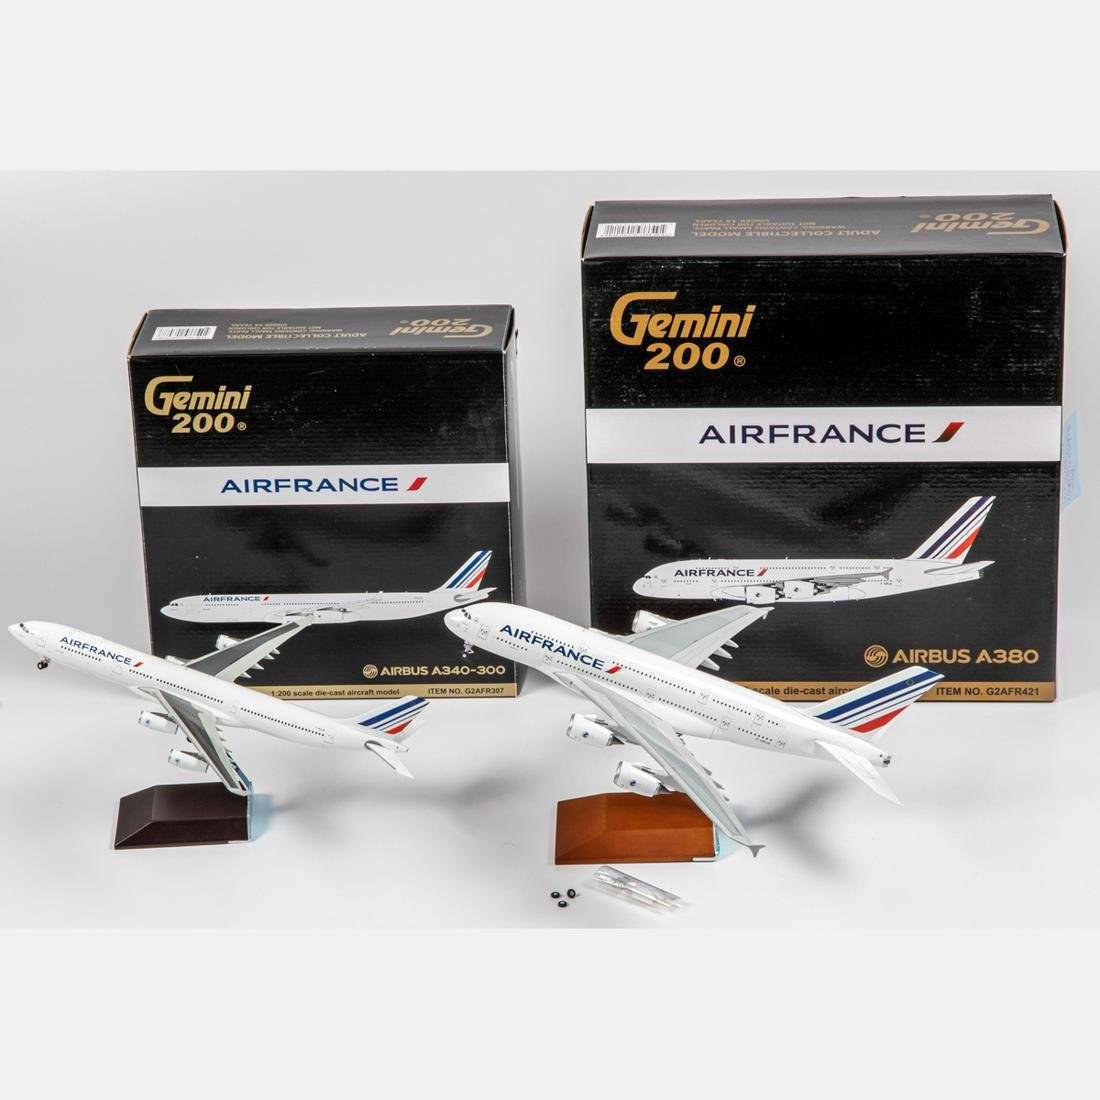 Two Air France Diecast Airplanes